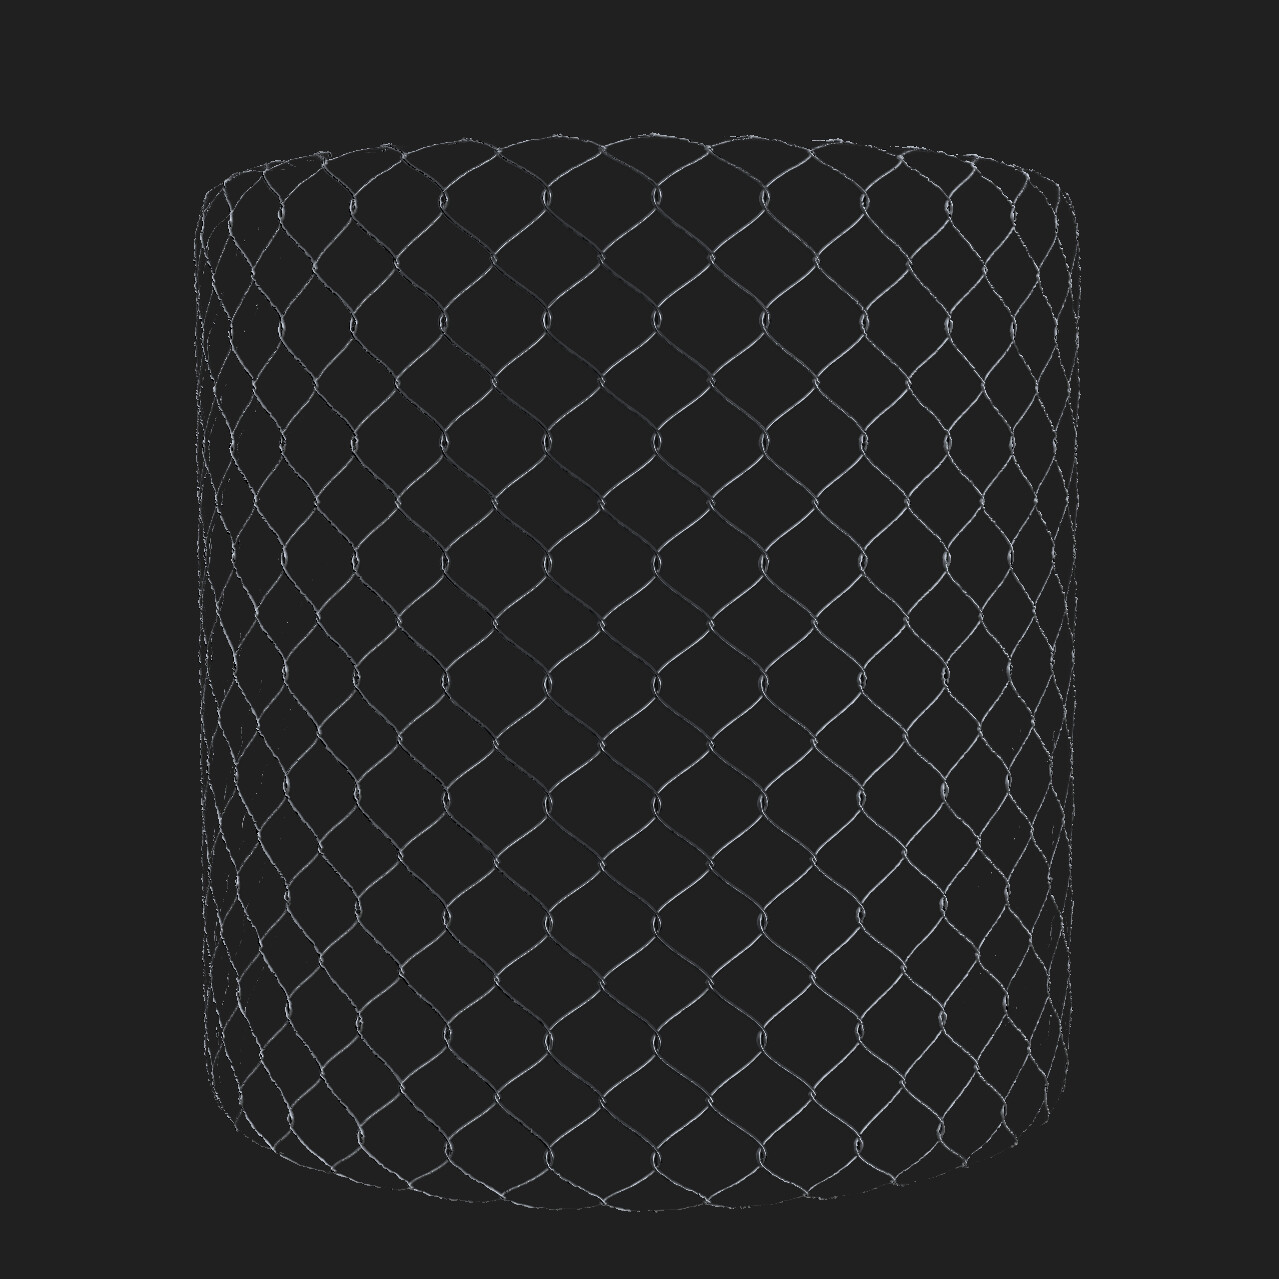 Substance Designer Chain Link Shader